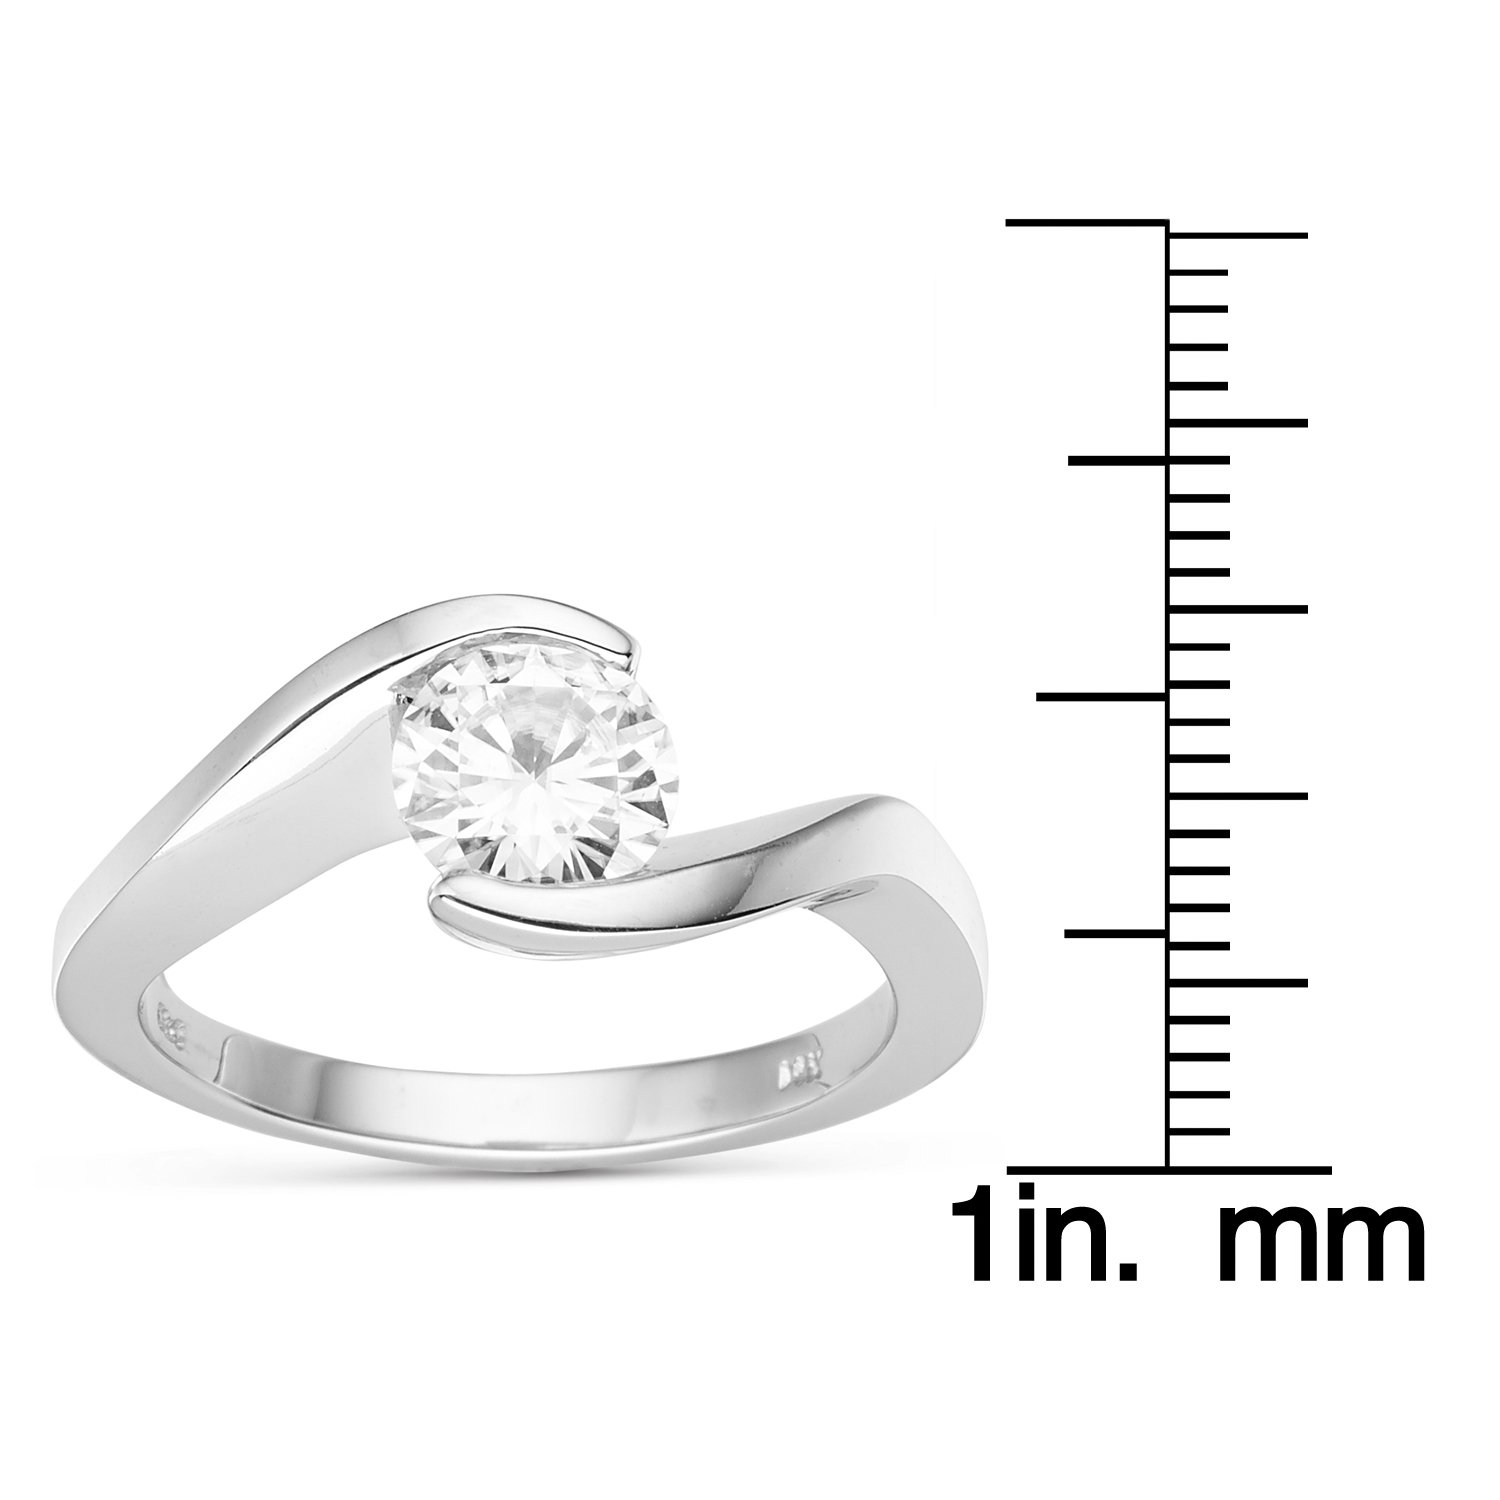 Forever Brilliant Round 6.5mm Moissanite Engagement Ring - size 8, 1.00ct DEW By Charles & Colvard by Charles & Colvard (Image #5)